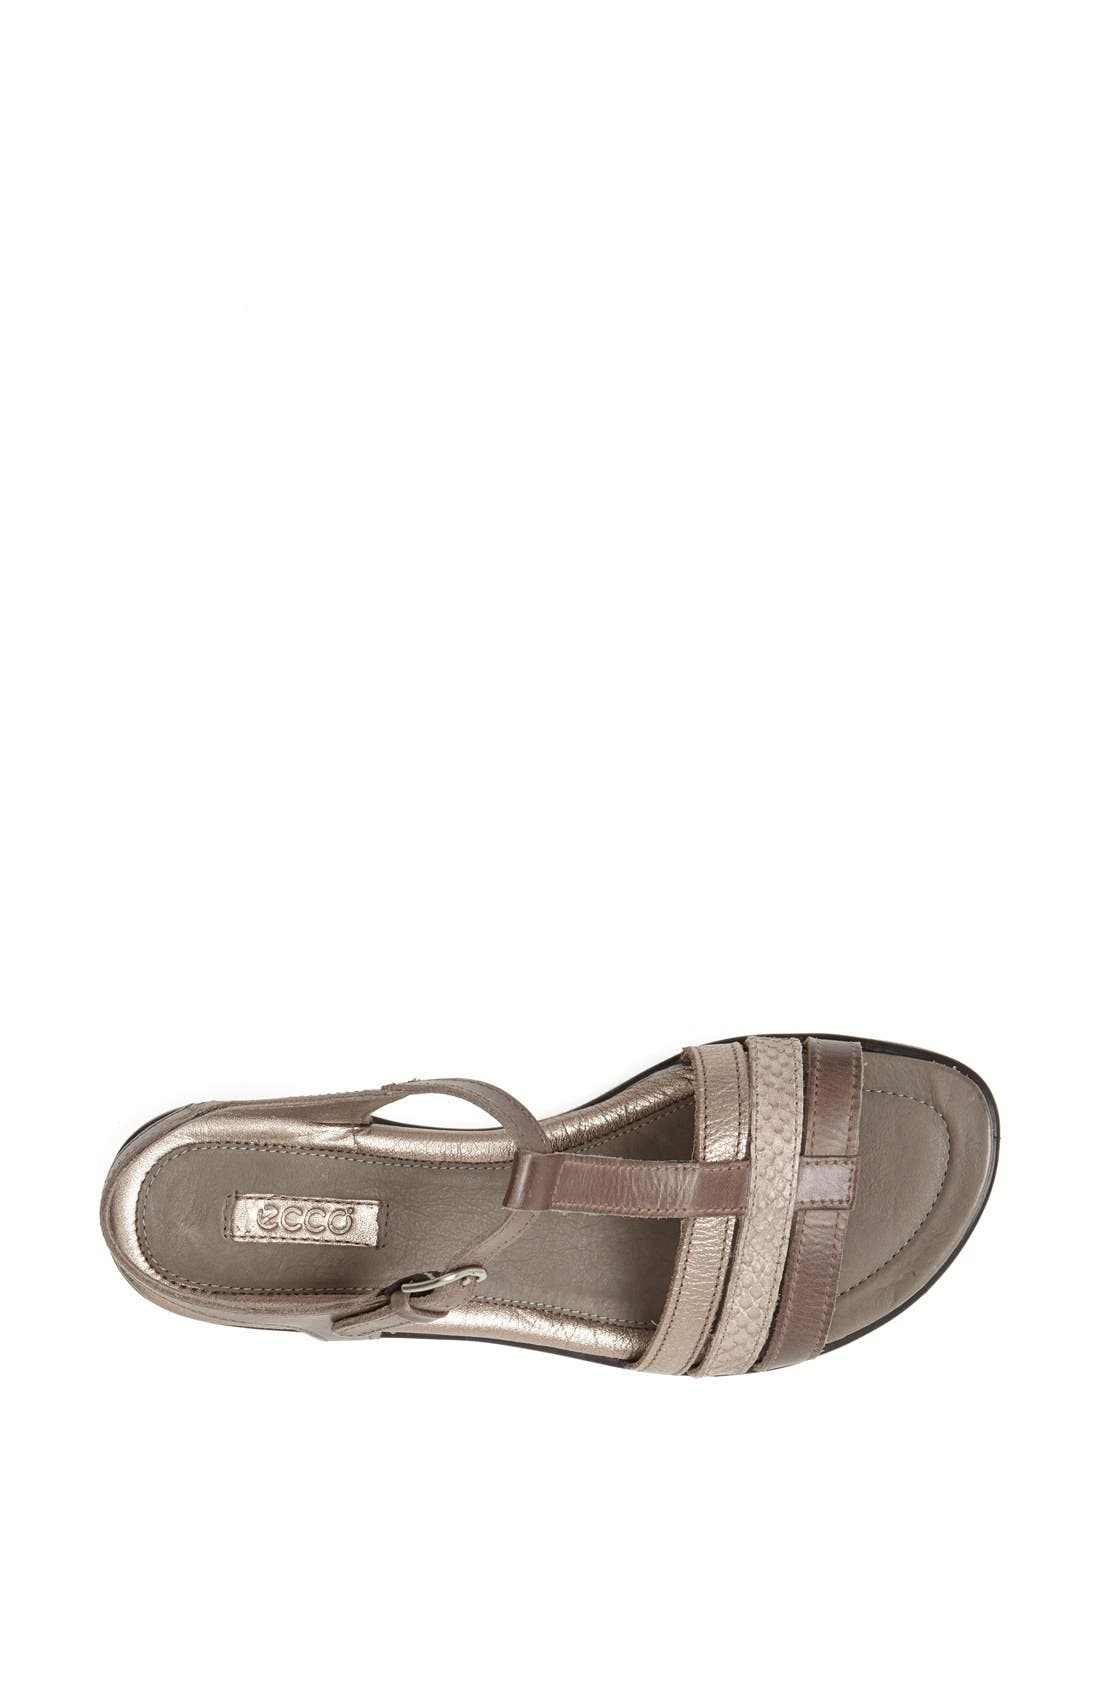 Alternate Image 3  - ECCO 'Sensata' Sandal (Regular Retail Price: $119.95)